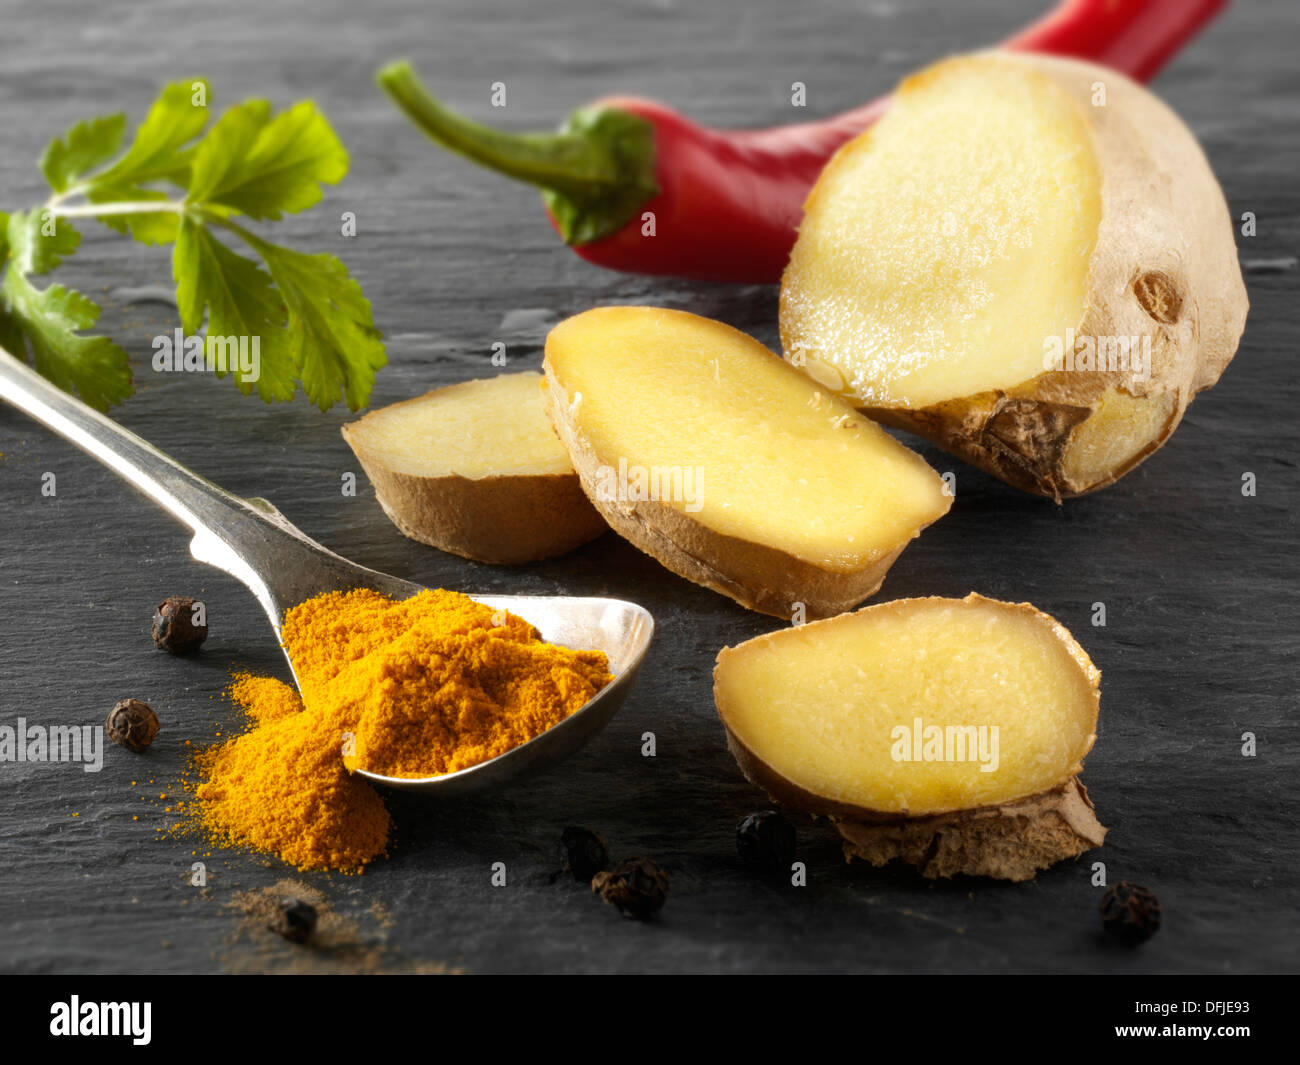 Fresh ginger root, red chili & ground turmeric. Indian spices - Stock Image